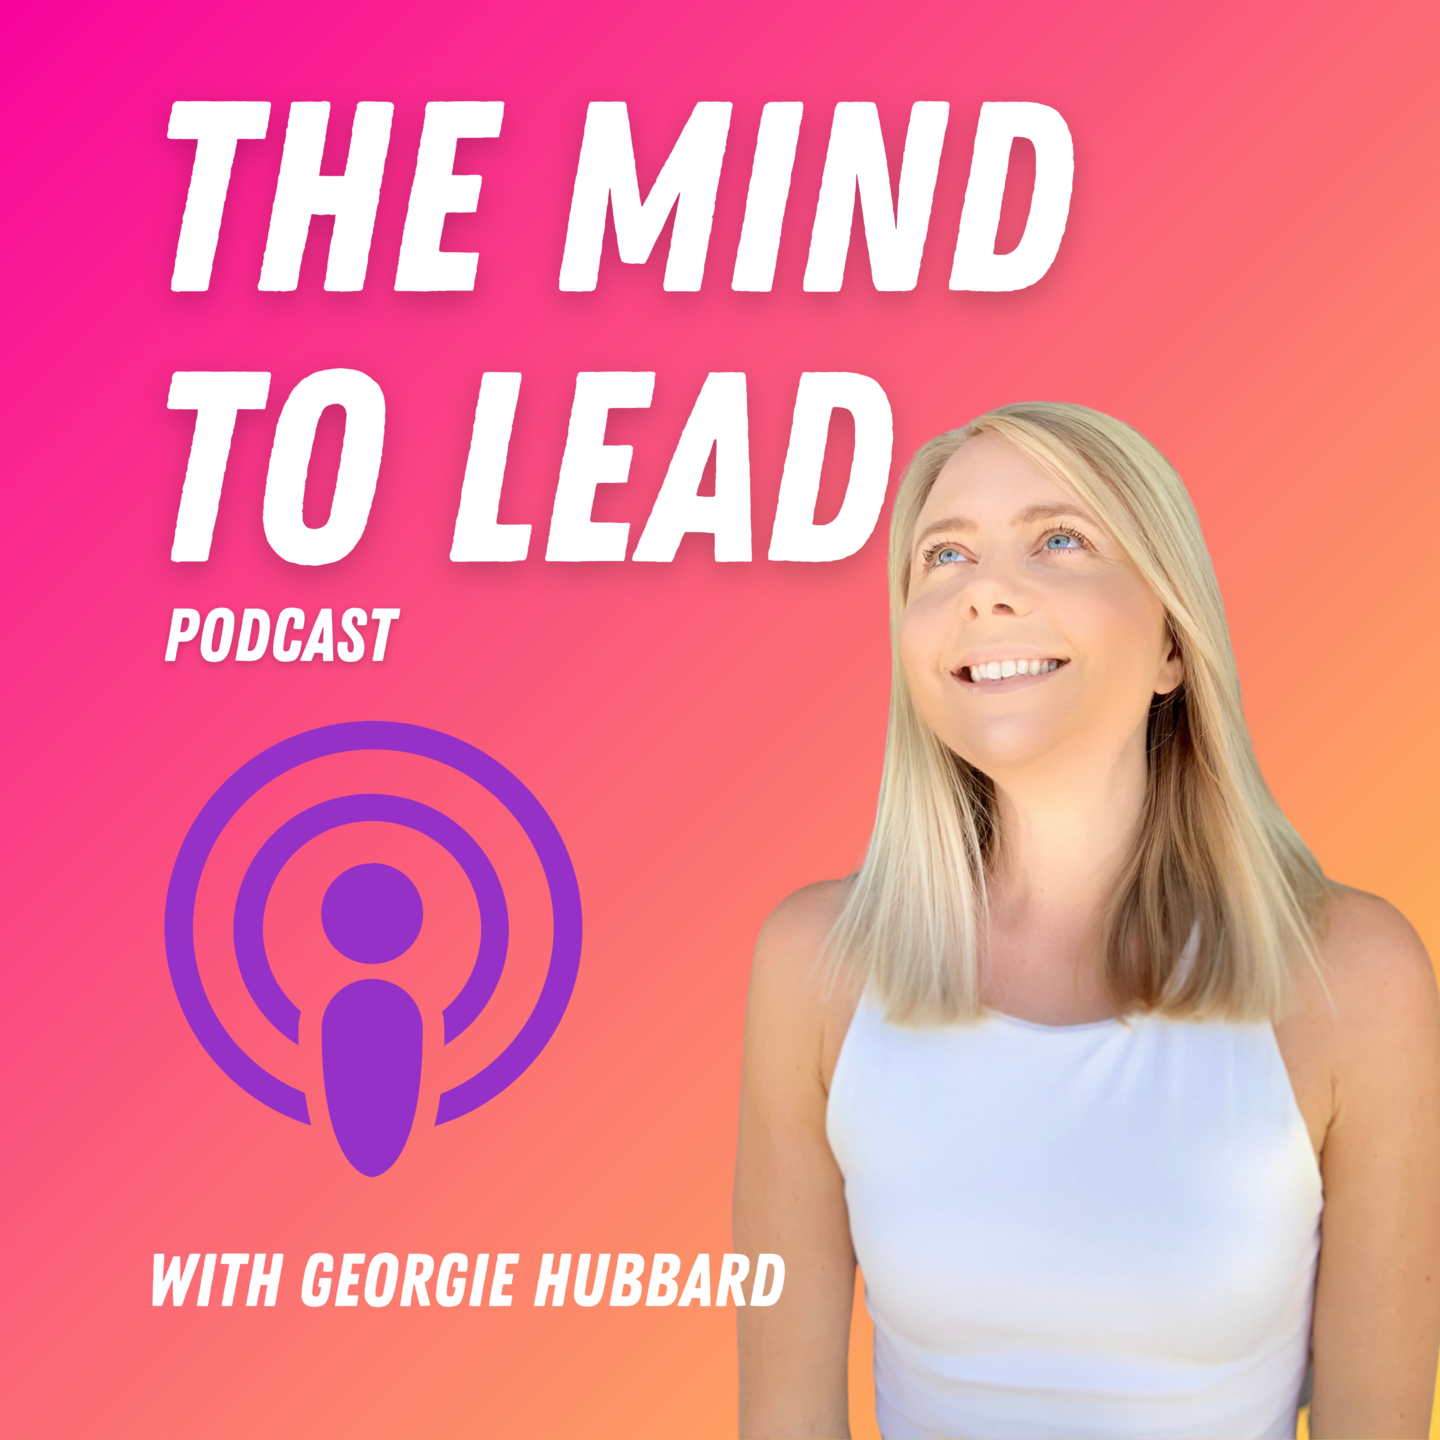 The Mind to Lead Podcast Apple